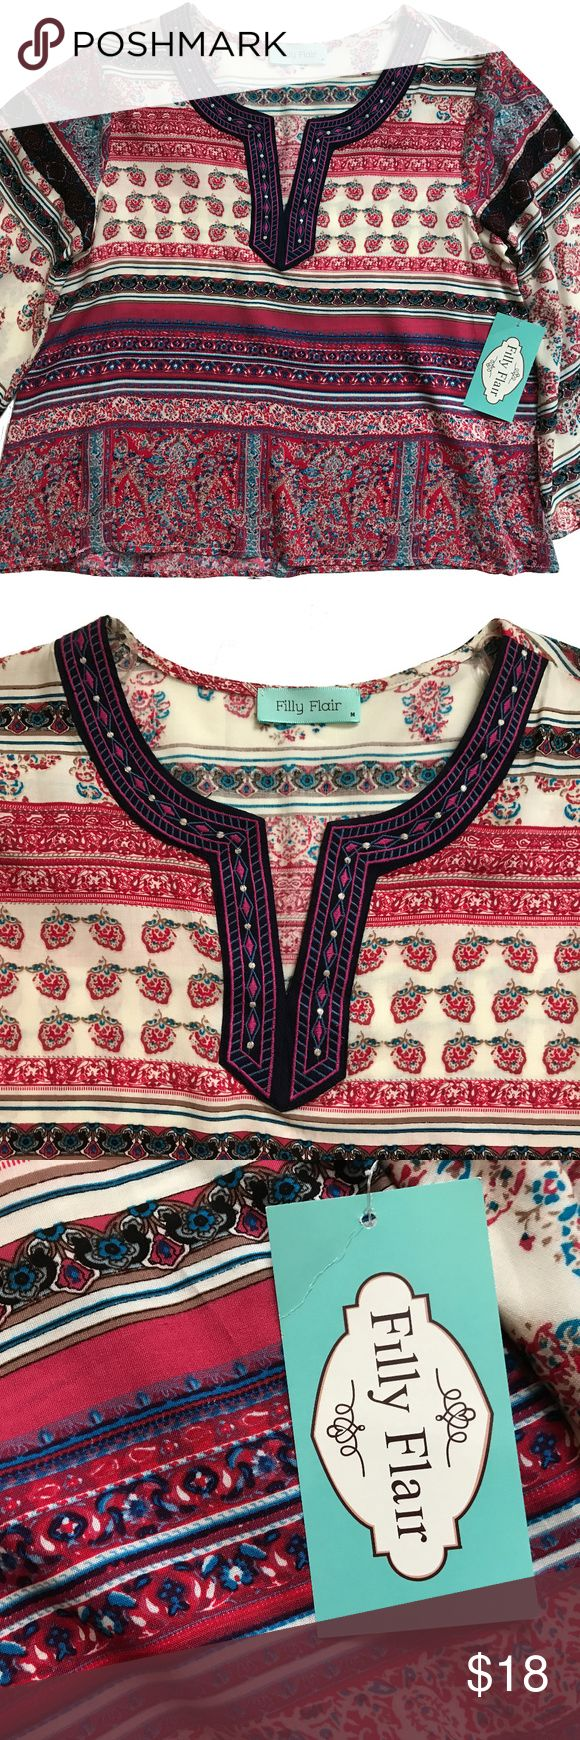 Tribal Boho Bell-Sleeve Filly Flair Medium This is a wonderful bohemian-style 3/4-length bell-sleeve top made of 100% viscose, so it's nice, light, and airy. Embroidered v-neck front. Filly Flair Tops Blouses